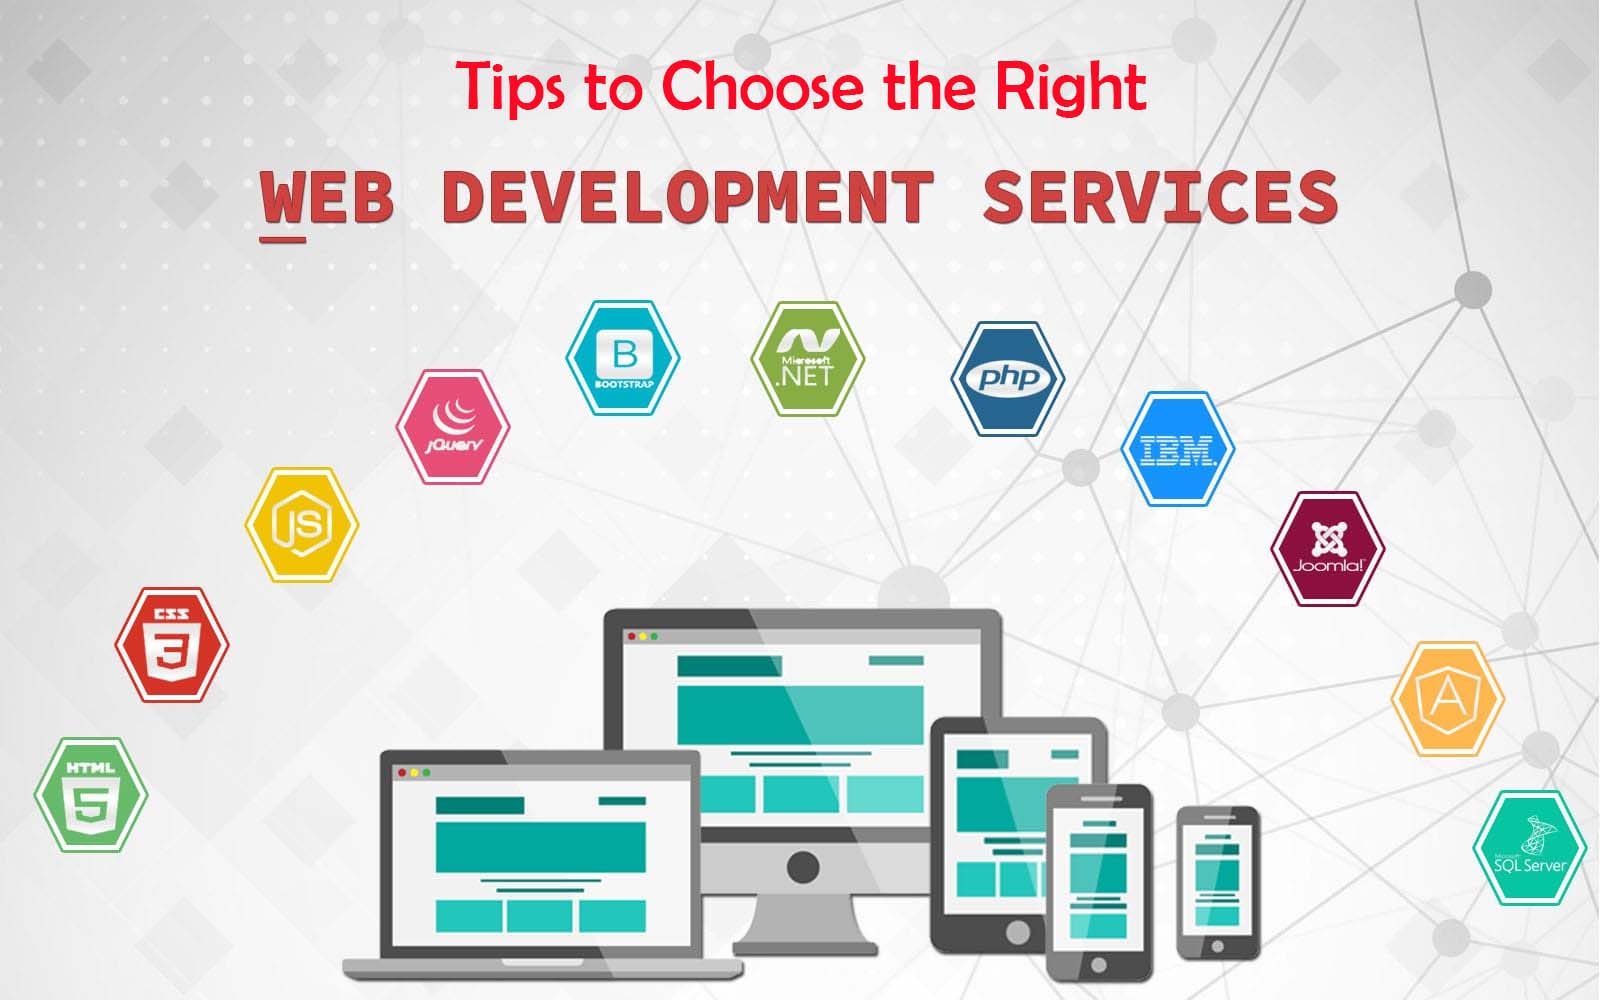 Tips to Choose the Right Website Development Services